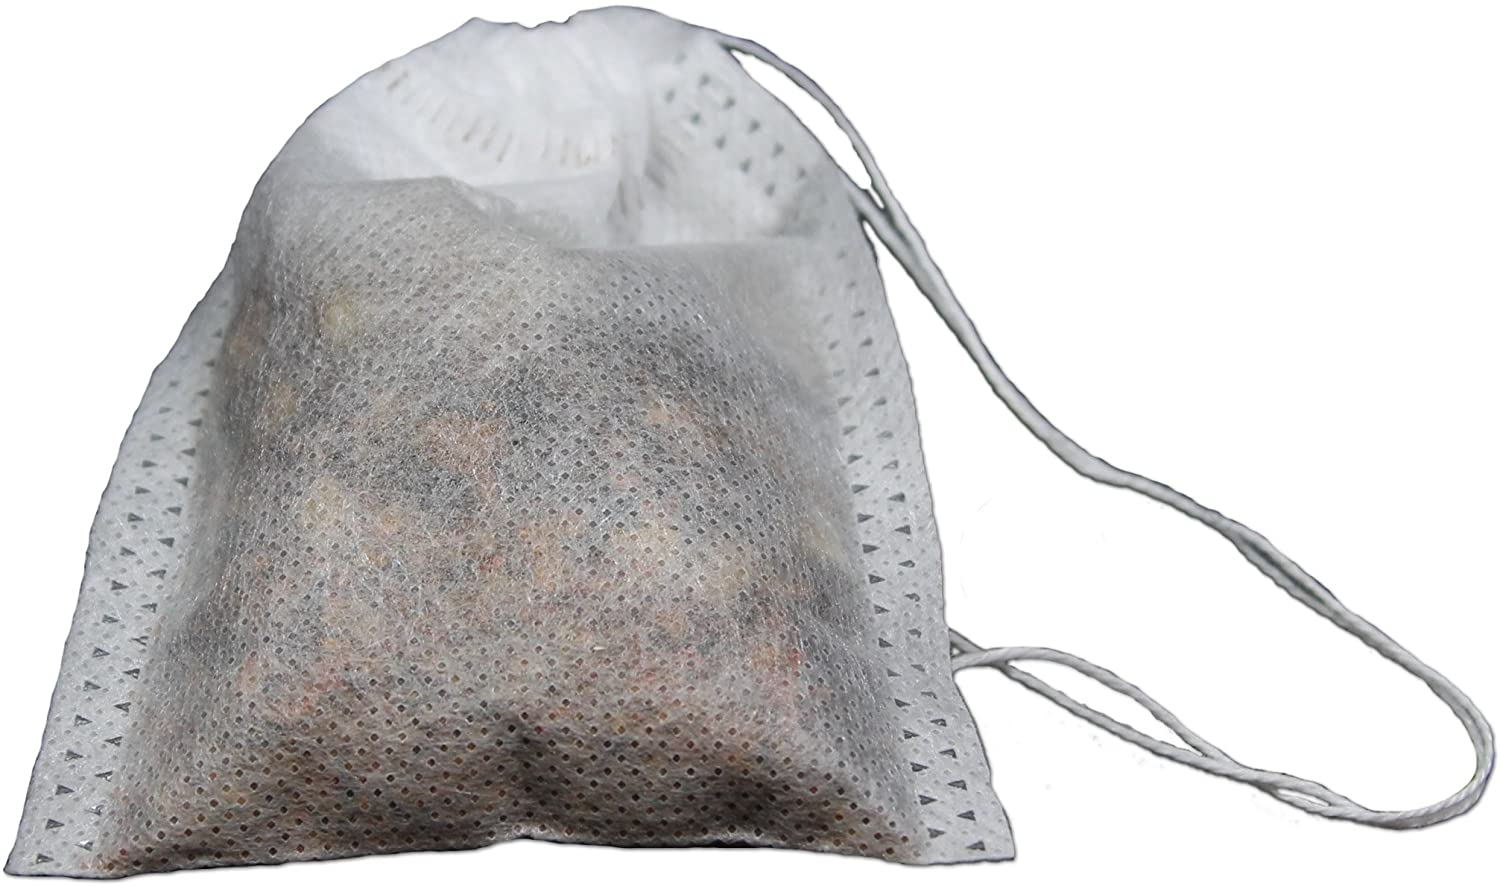 Special Tea 5000 Count Woven Style Draw String Bag, Large/3.14